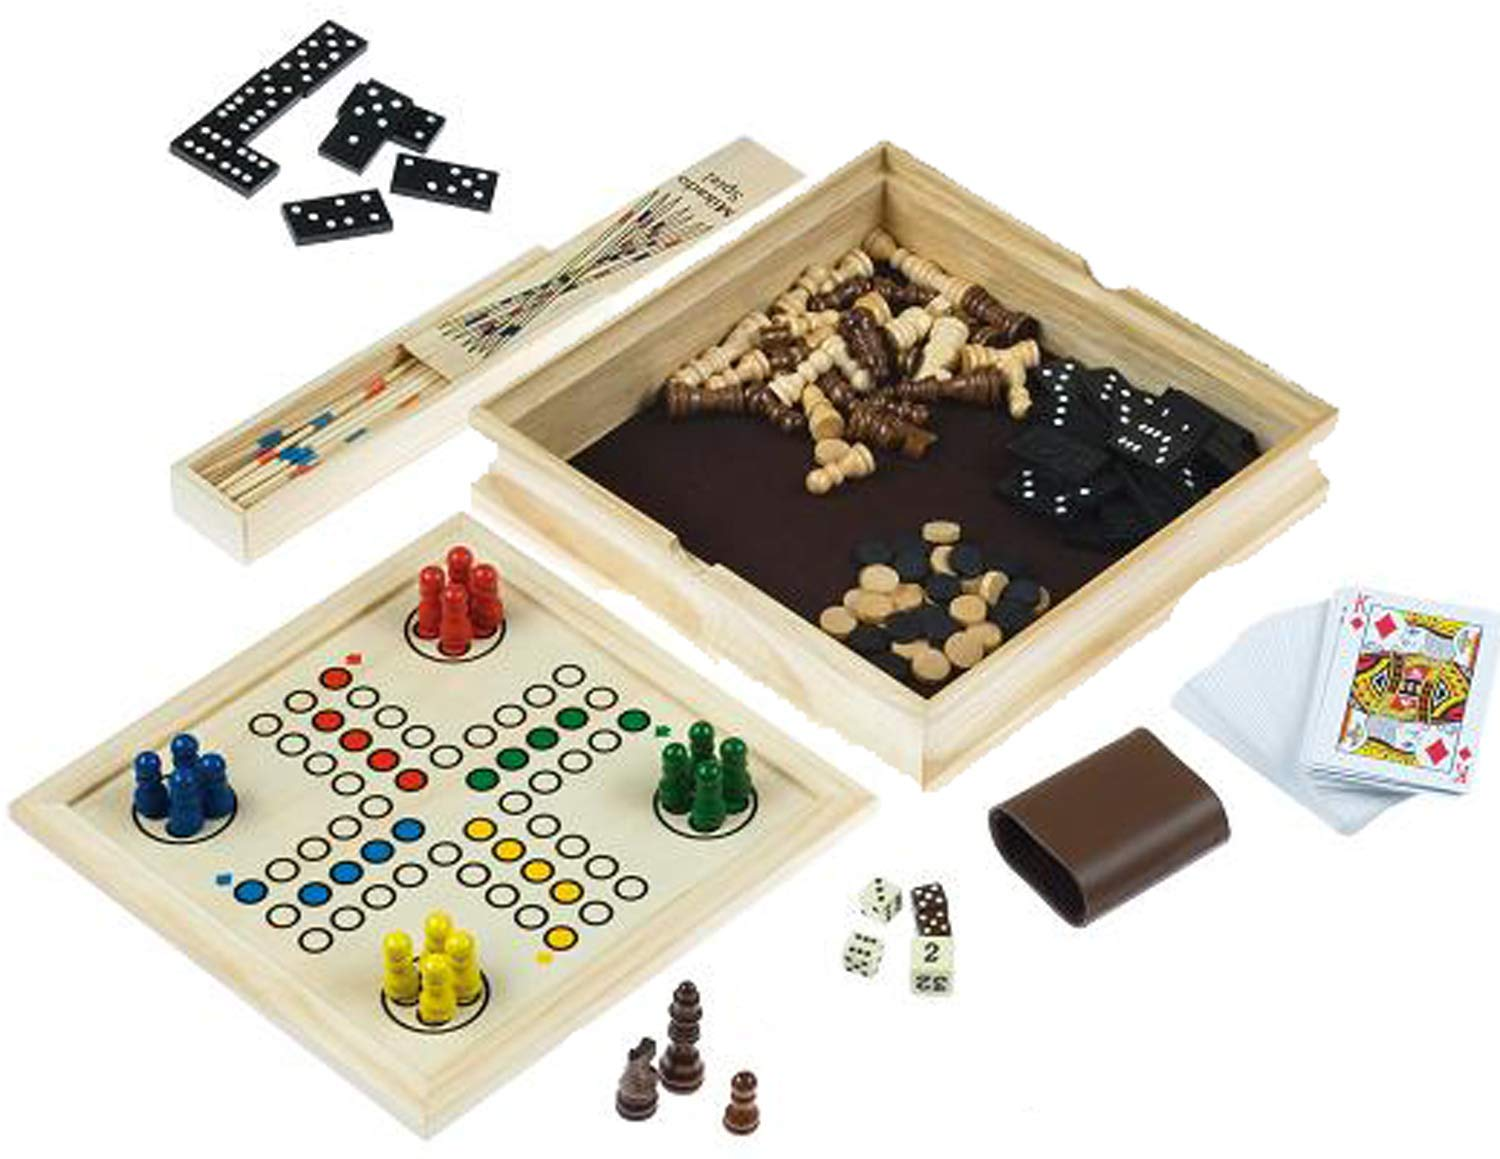 Deluxe-large-over-10-in-1-wooden-games-compendium-dice-games-board-games-card-games-more-by-Longfield